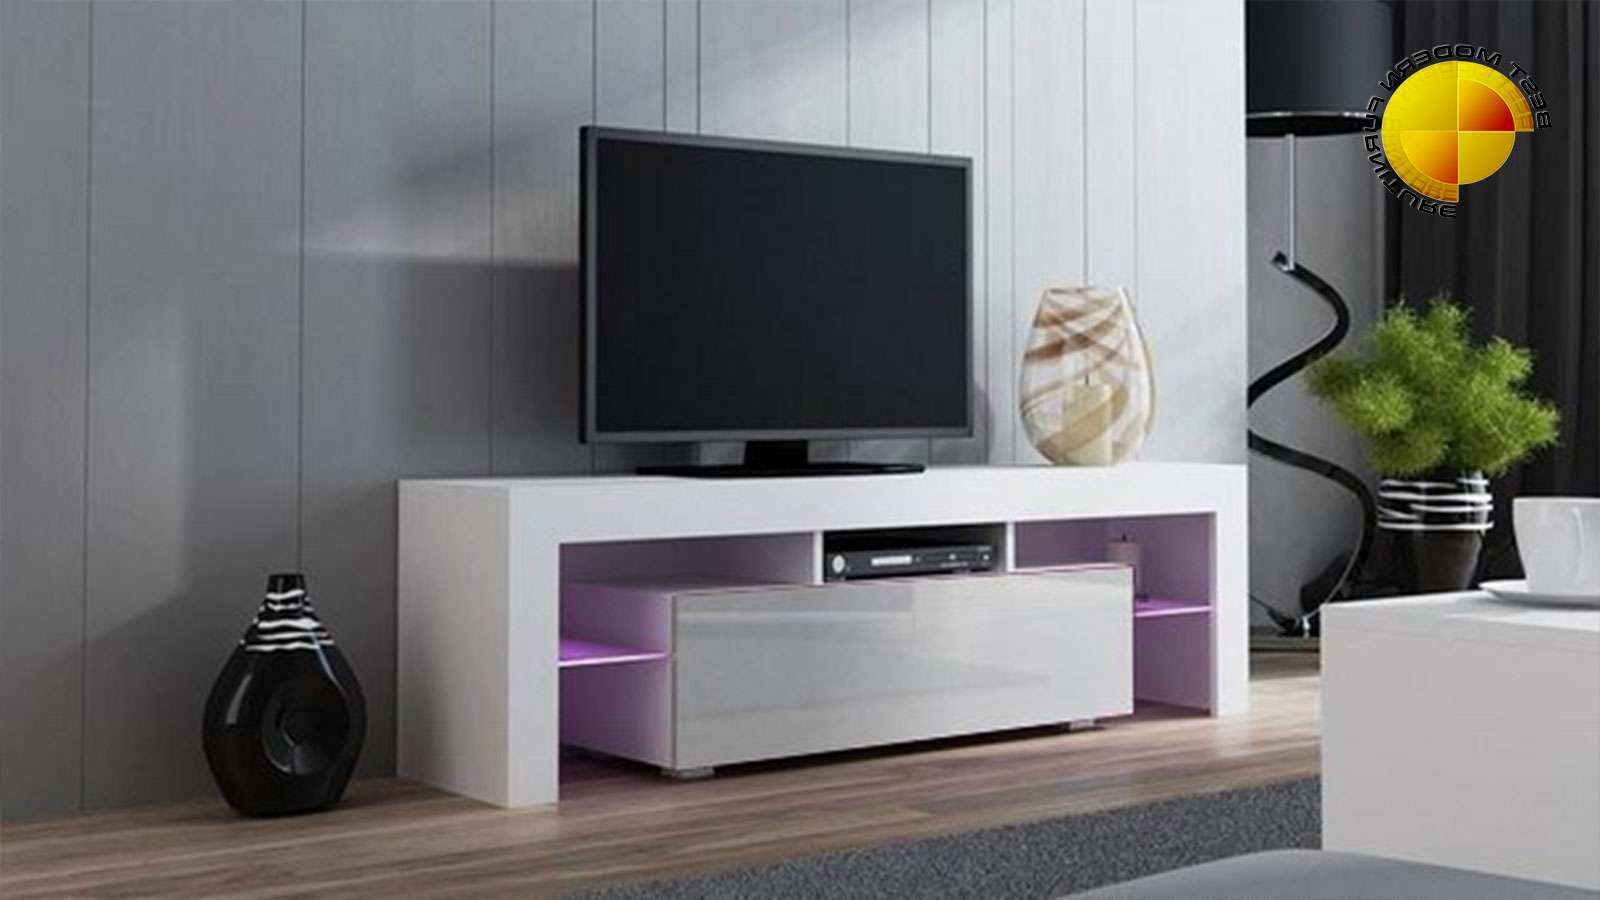 Modern Tv Stand 160Cm High Gloss Cabinet Rgb Led Lights White Unit Throughout High Gloss Tv Cabinets (View 16 of 20)